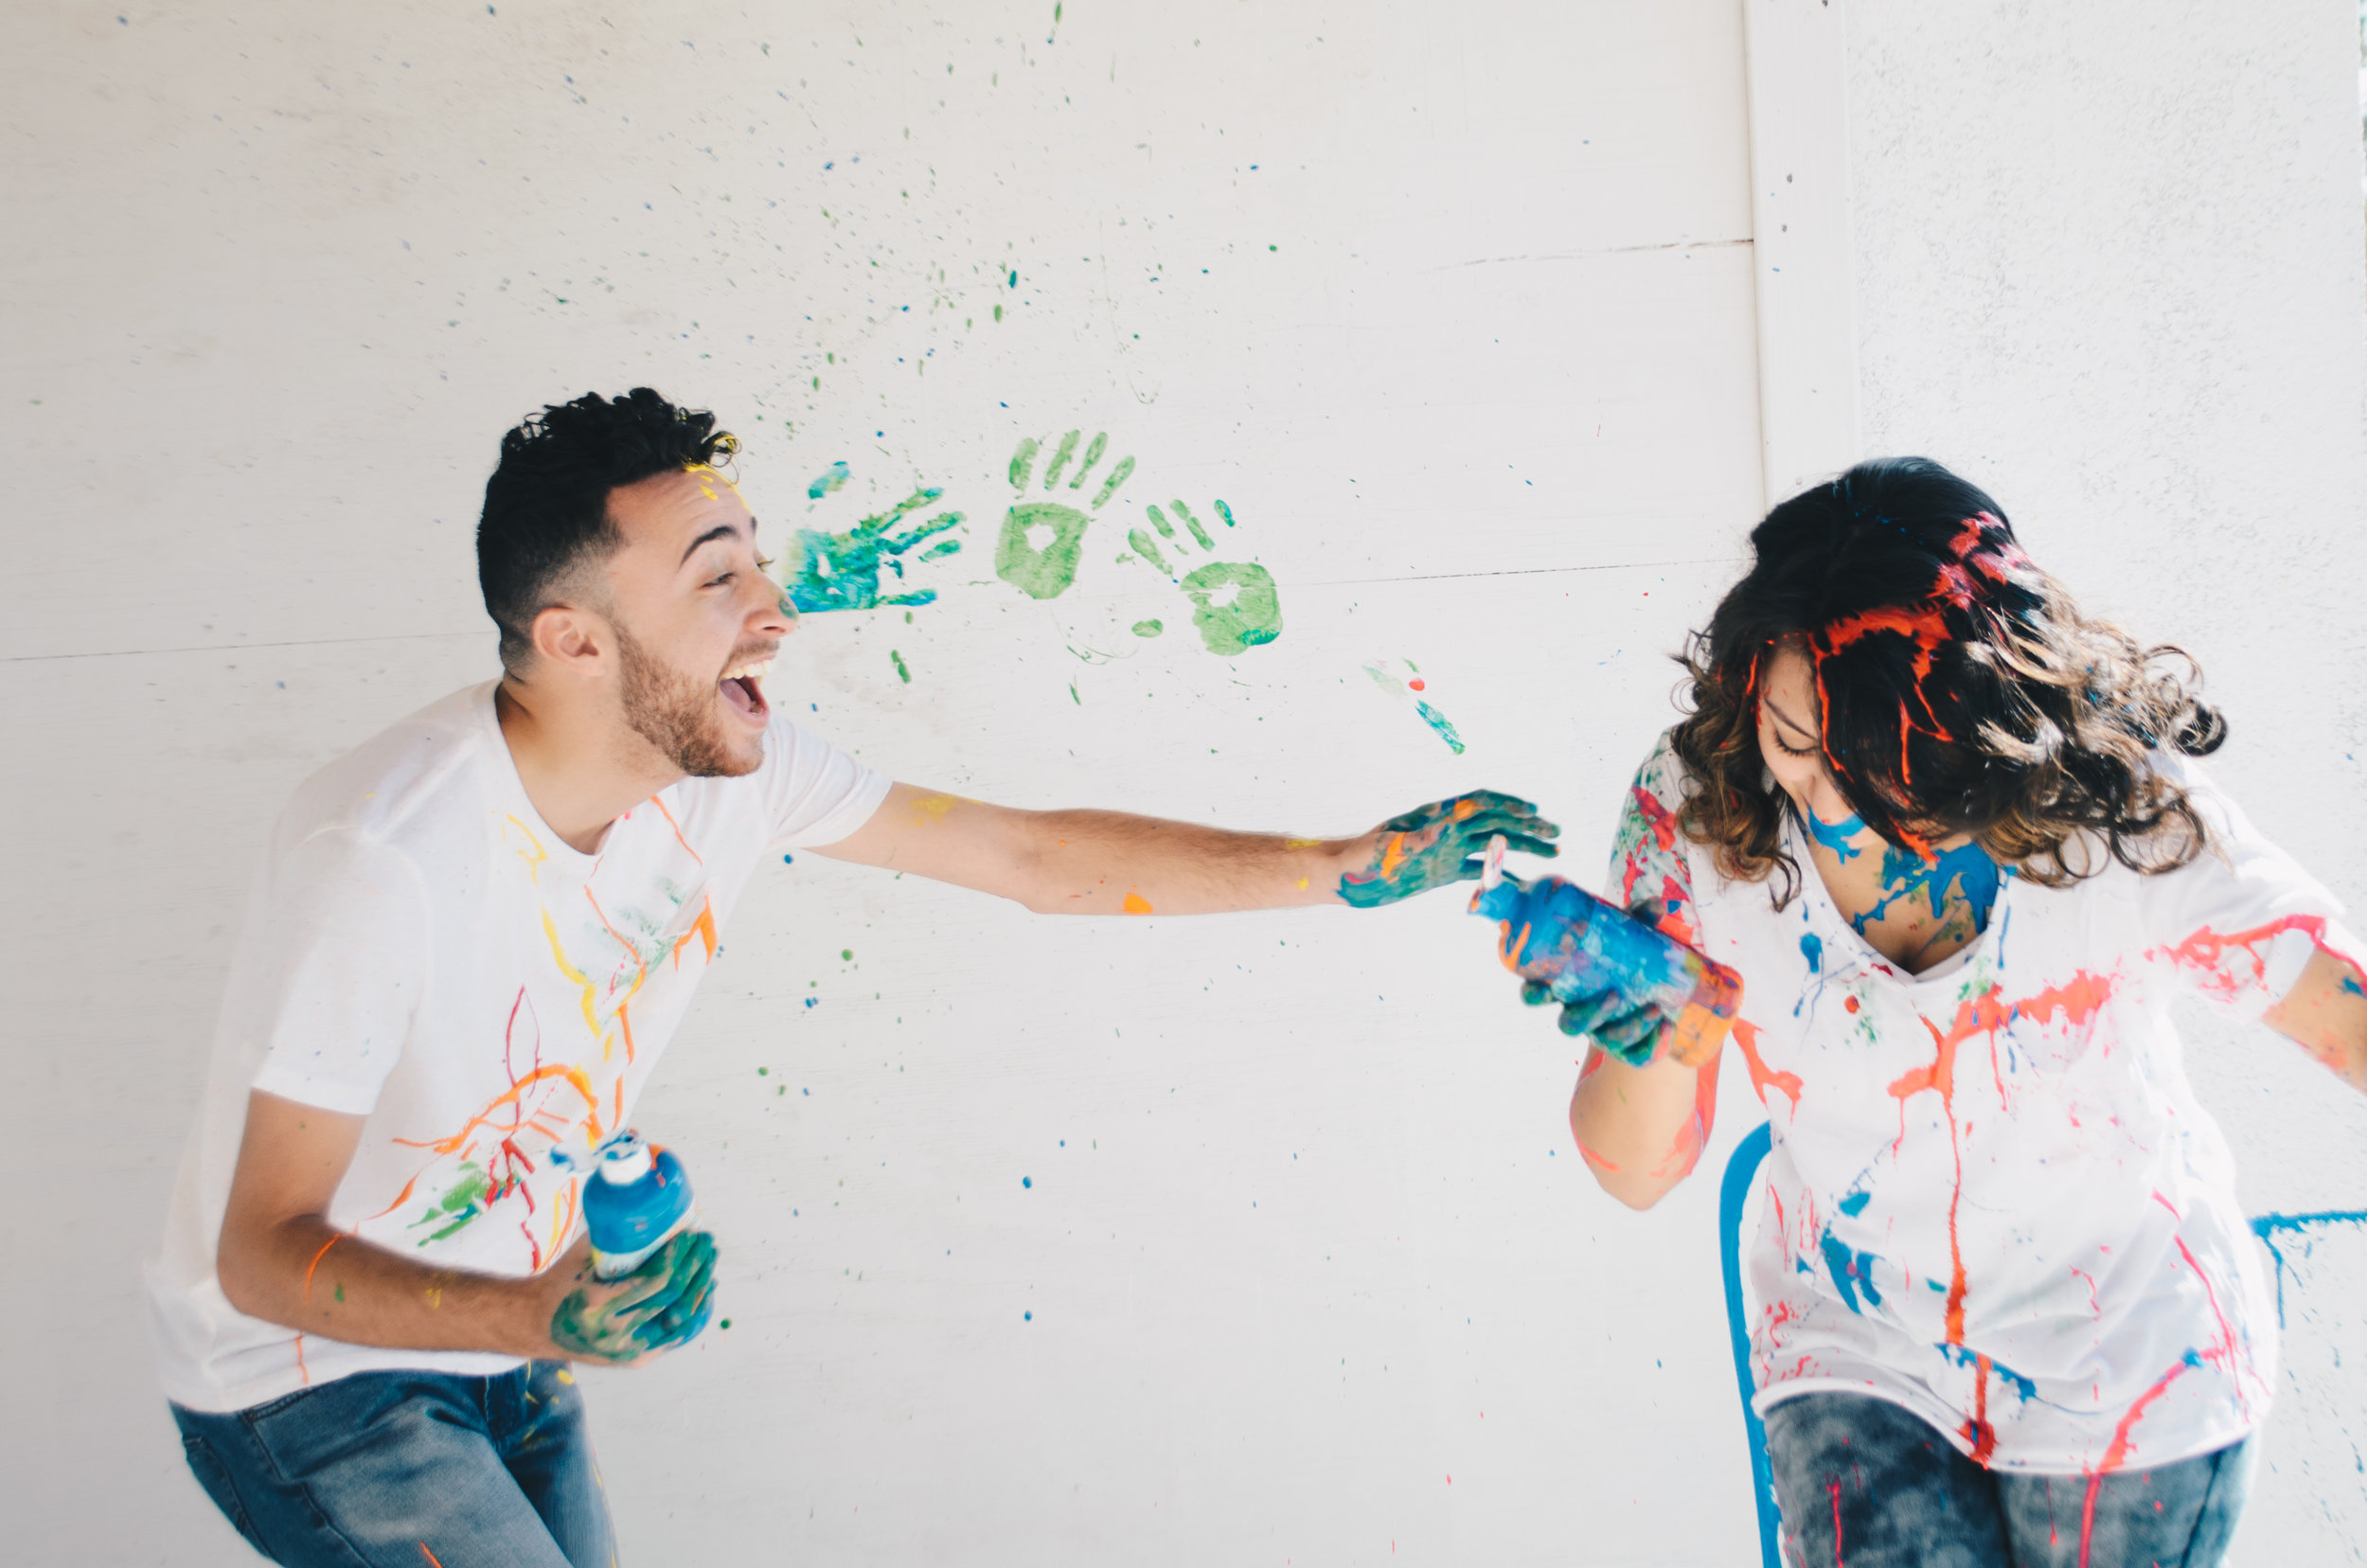 central-fl-christian-paint-war-session-11.jpg